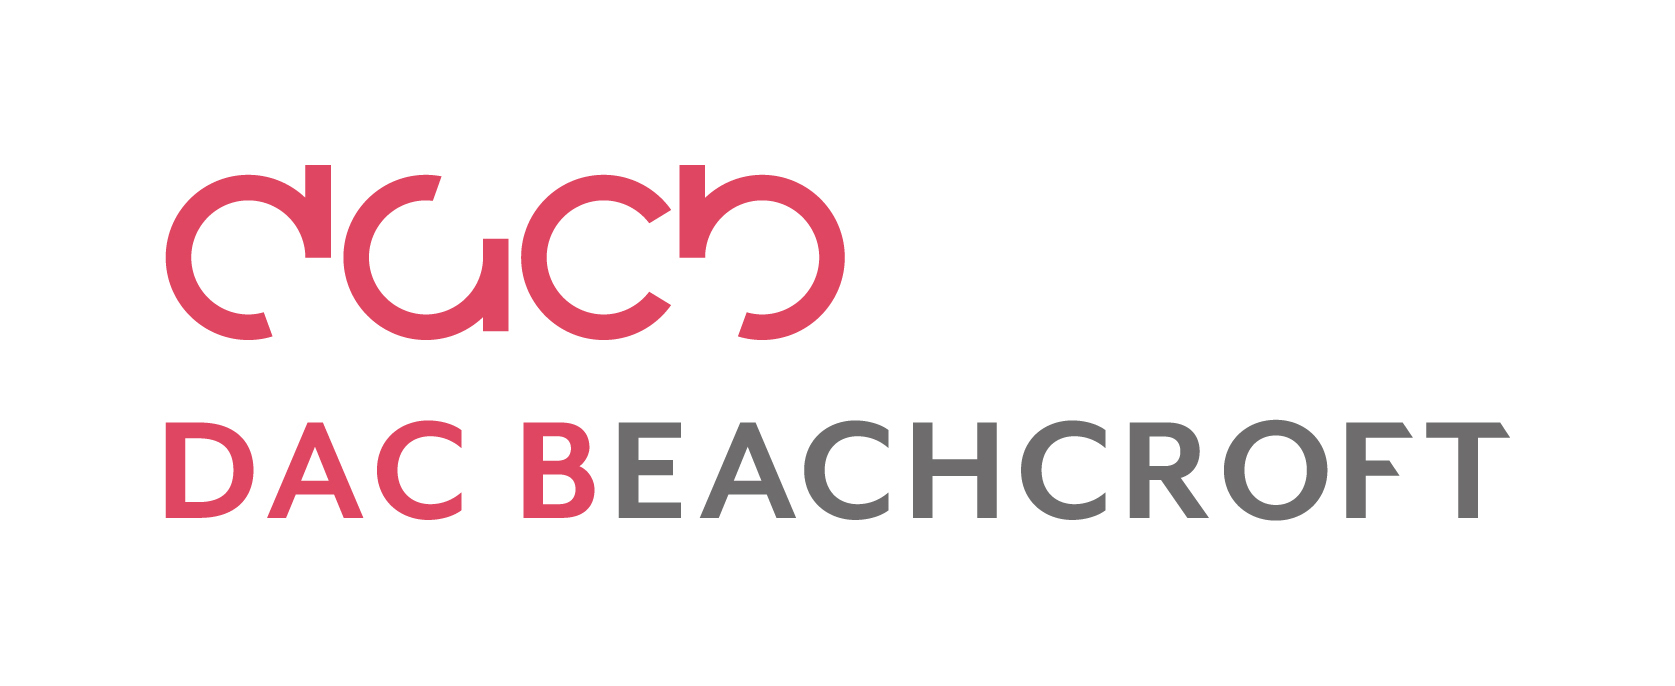 /legal-diversity-and-inclusion-directory/dac-beachcroft/